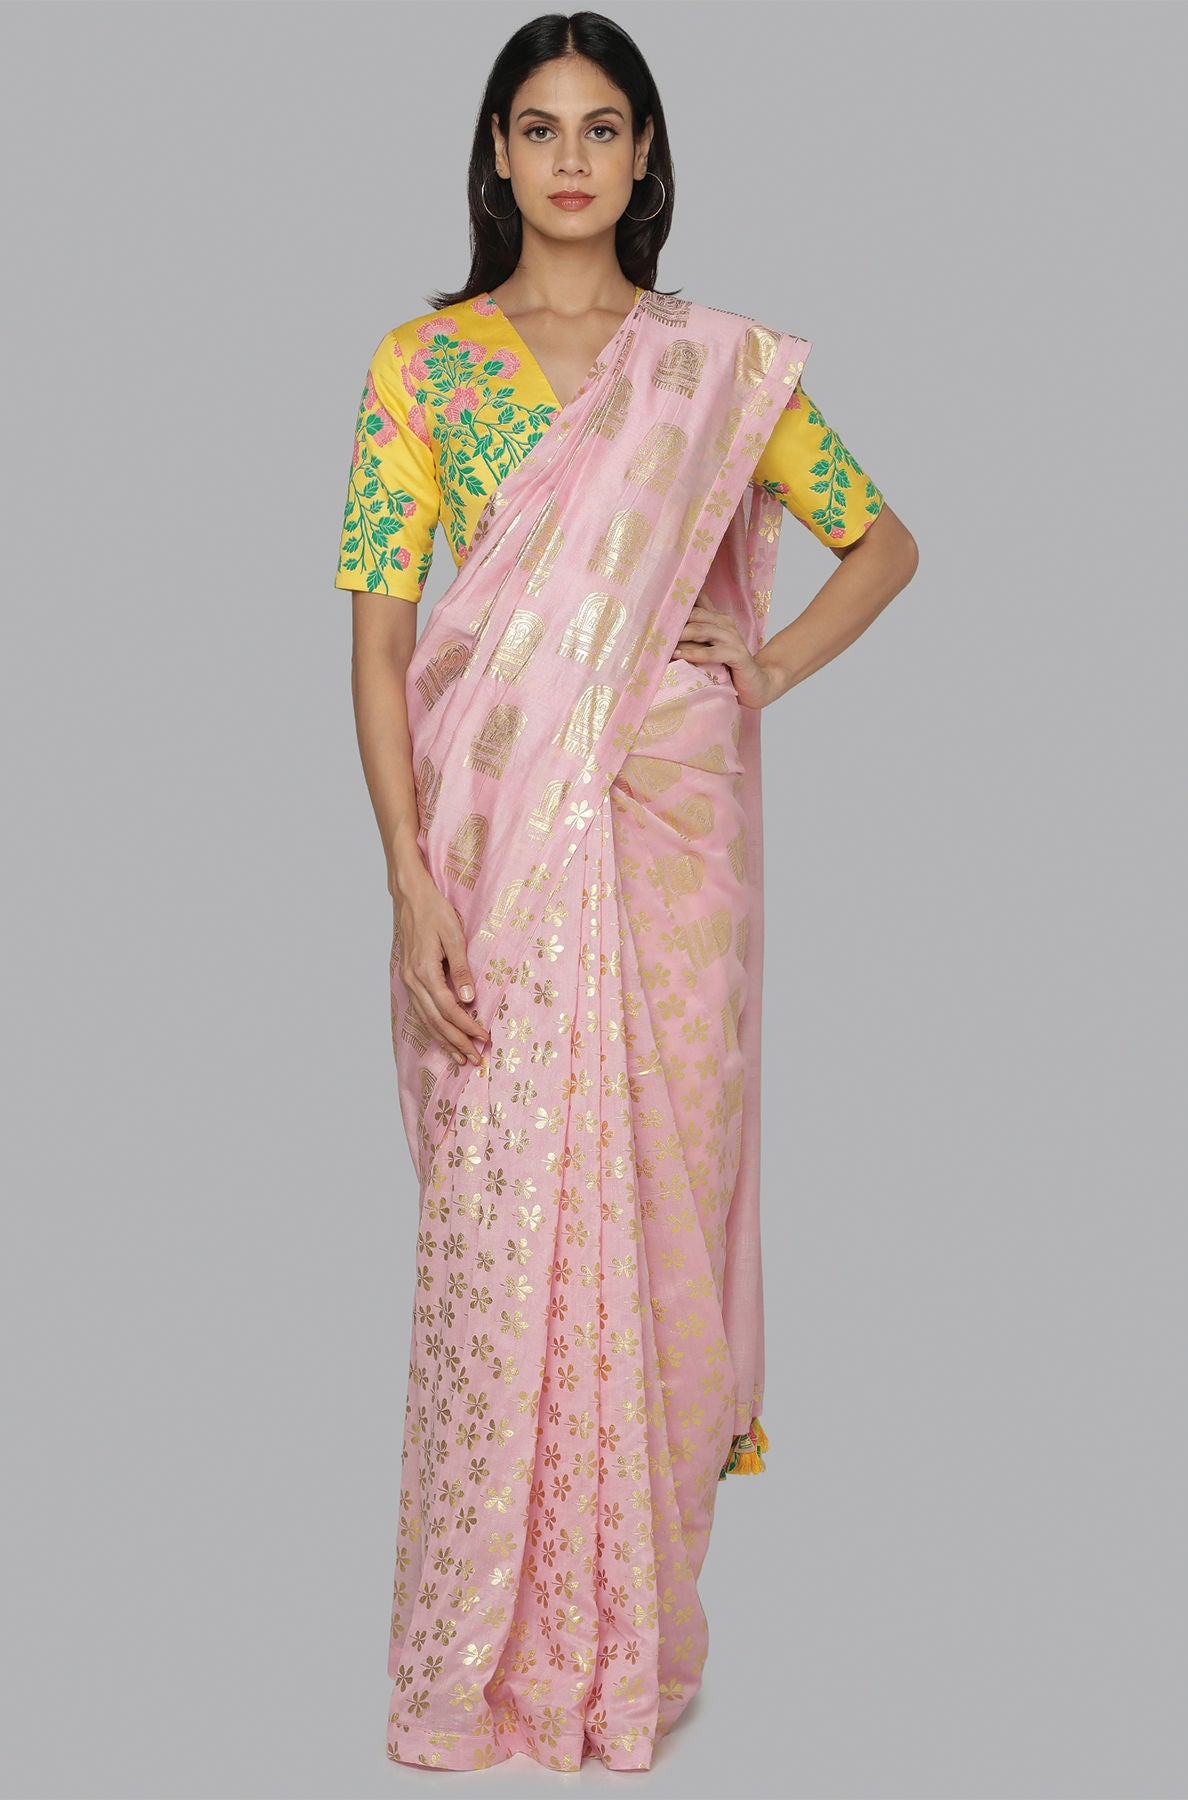 LIGHT PINK  COMB & SPARKLE FOIL HALF & HALF SARI WITH YELLOW FLORAL BLOOM BLOUSE PIECE - The Grand Trunk